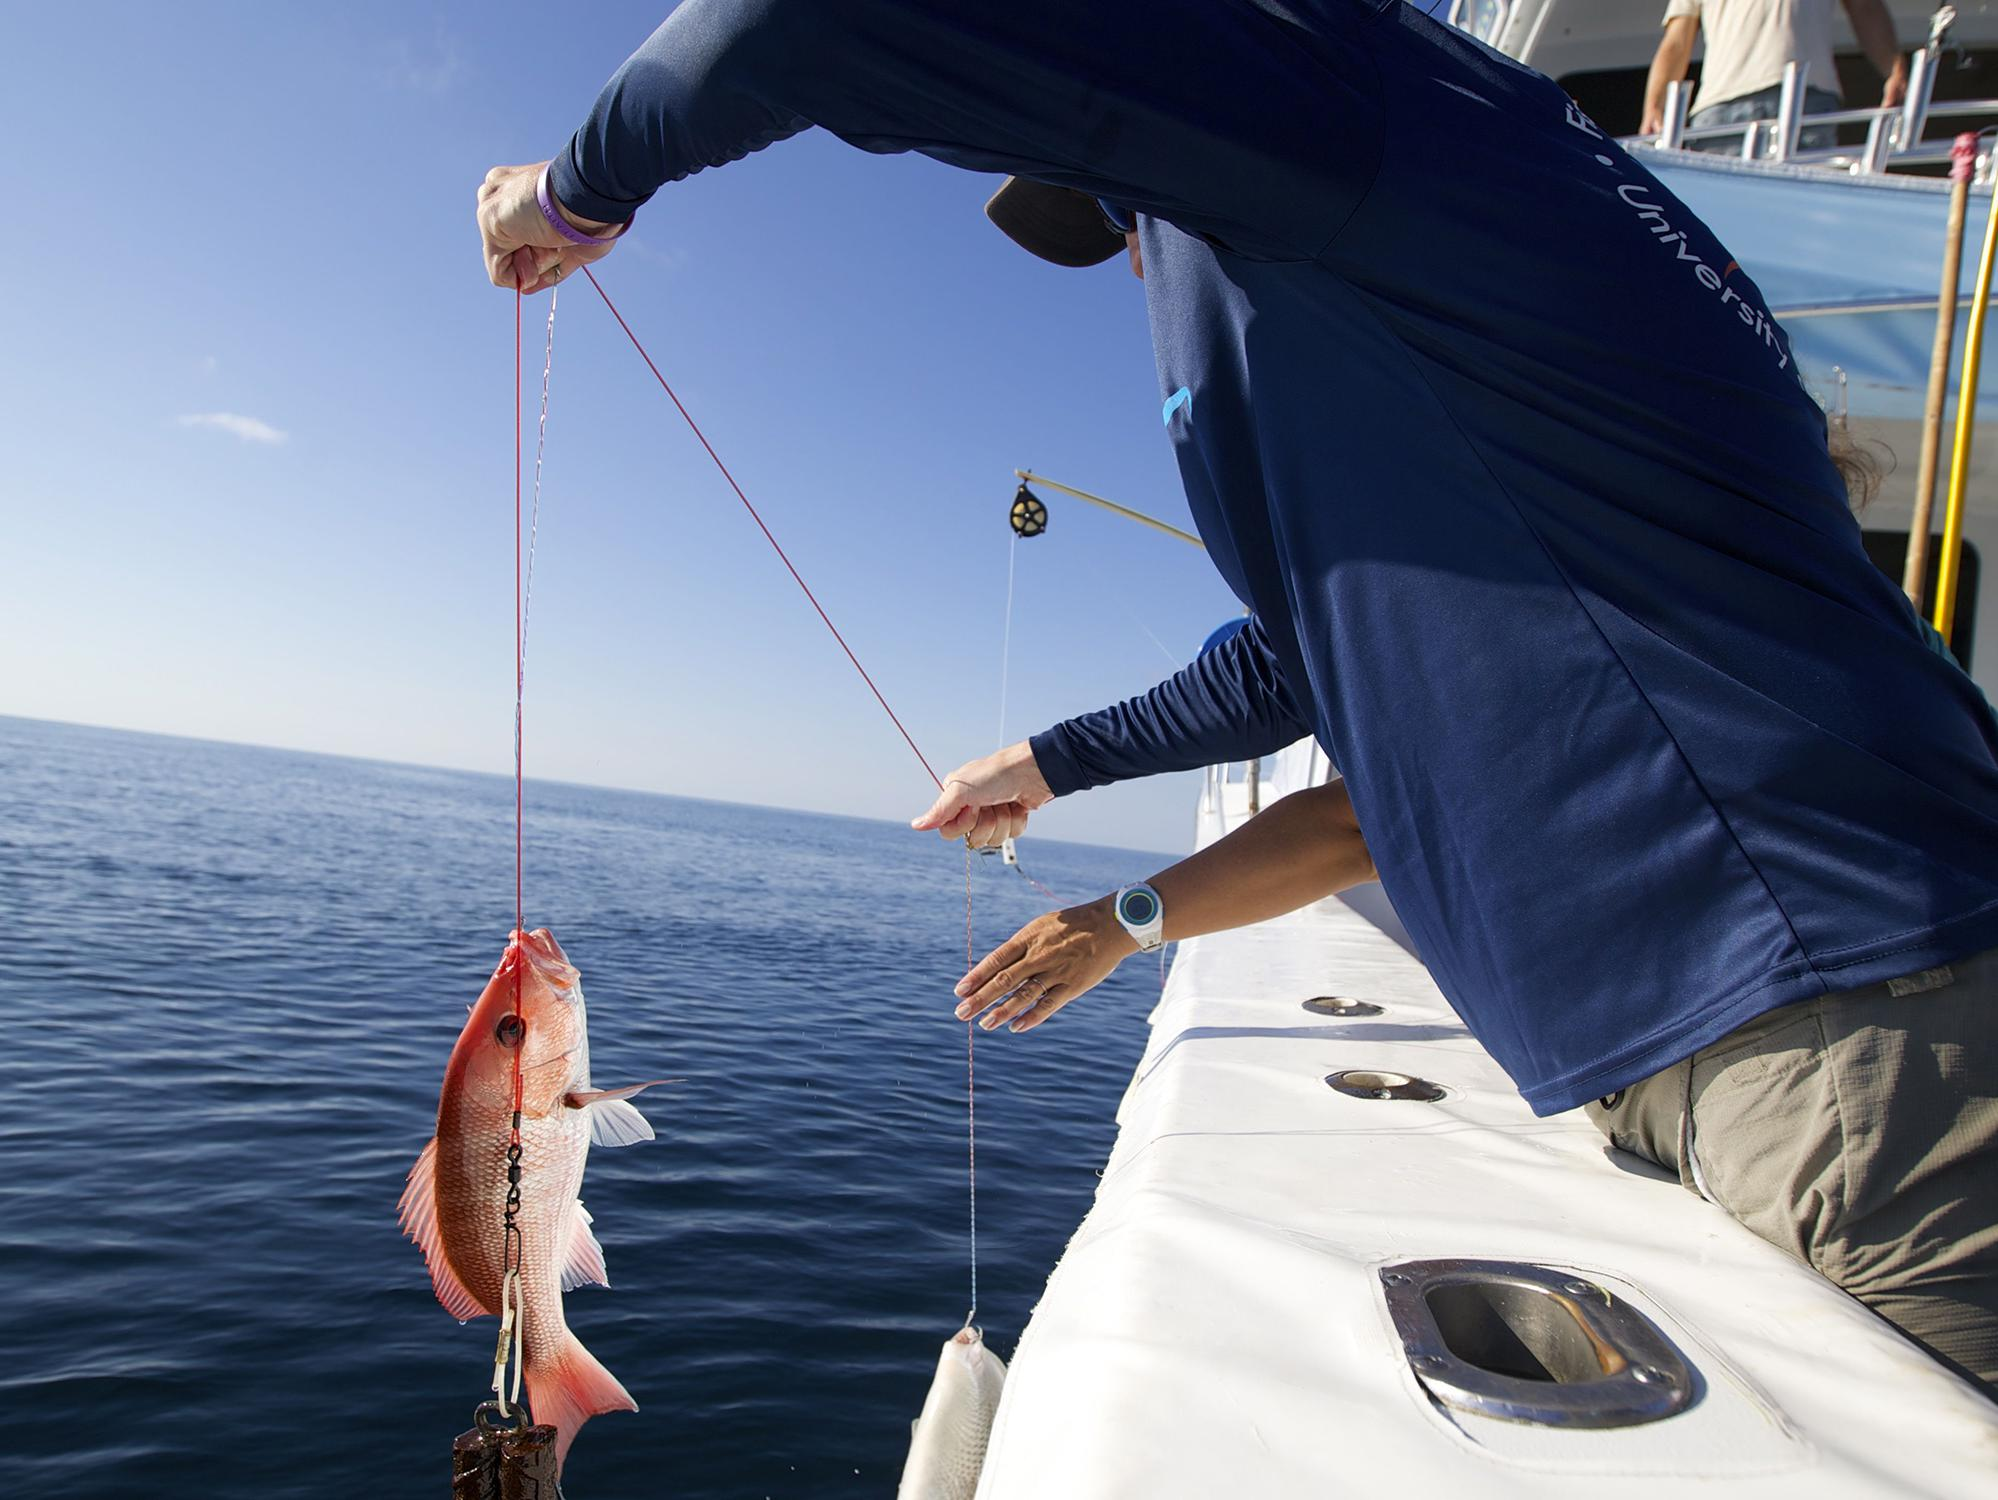 A man in a boat holds a red snapper fish with a hook-and-line mechanism.